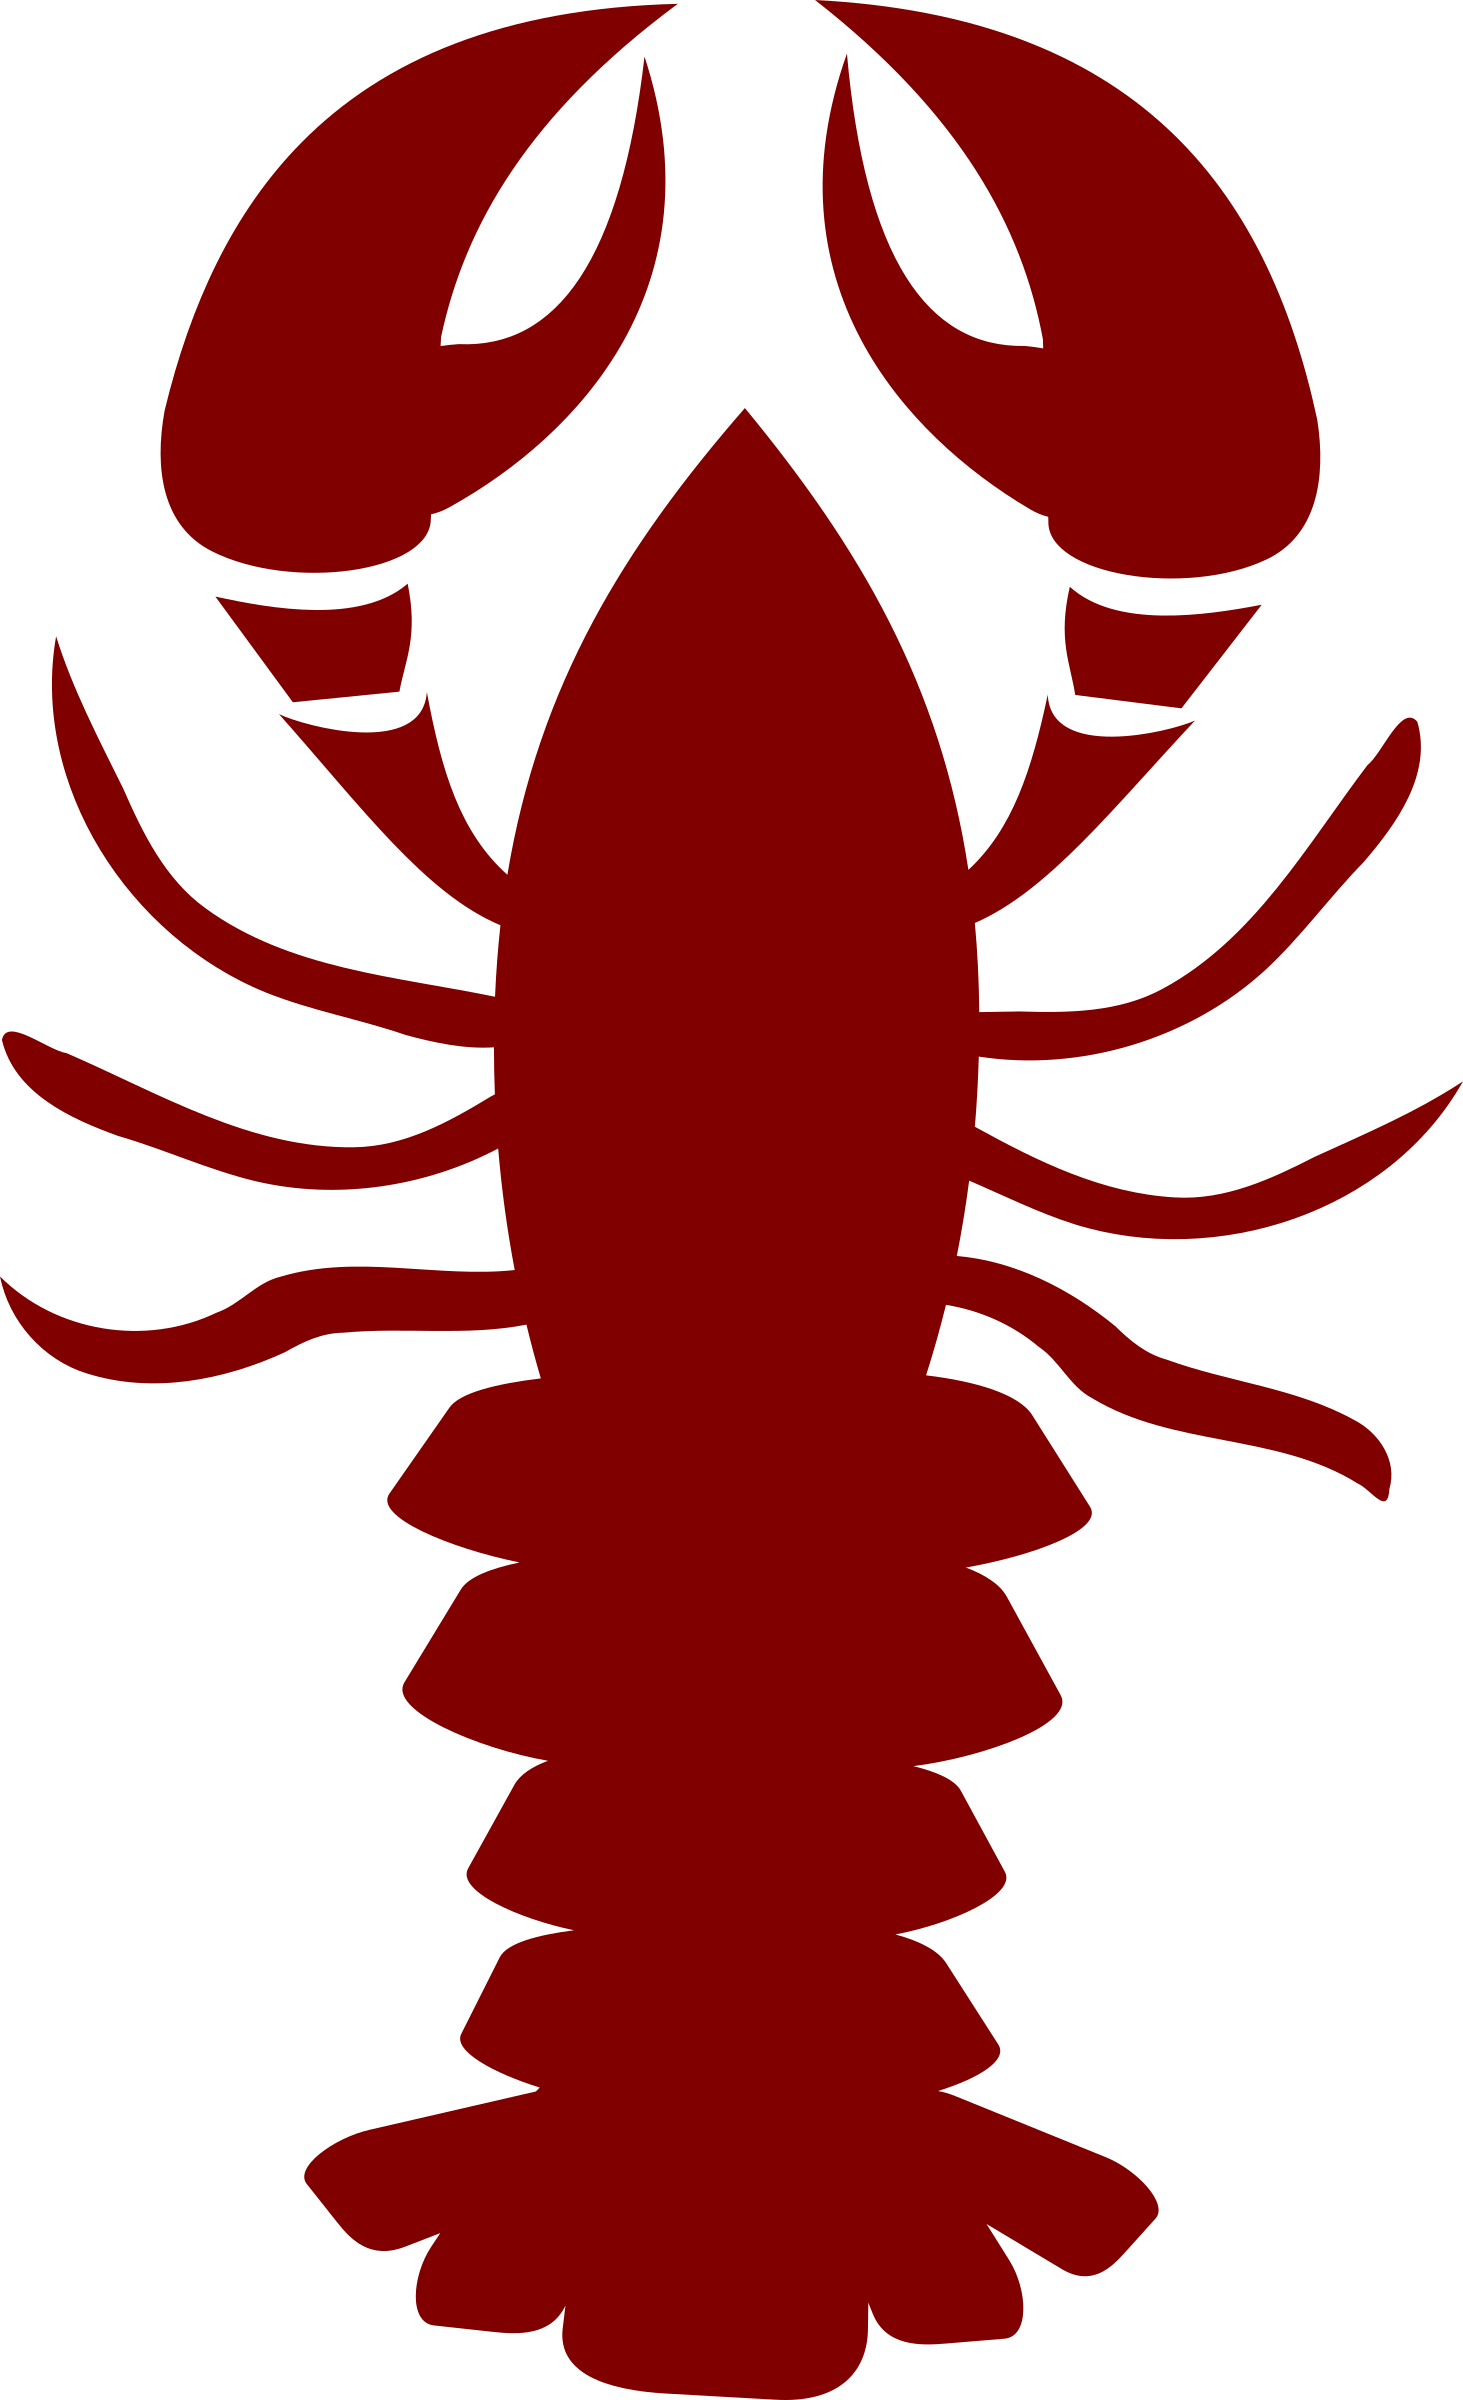 Lobster (stylised) by Jotam